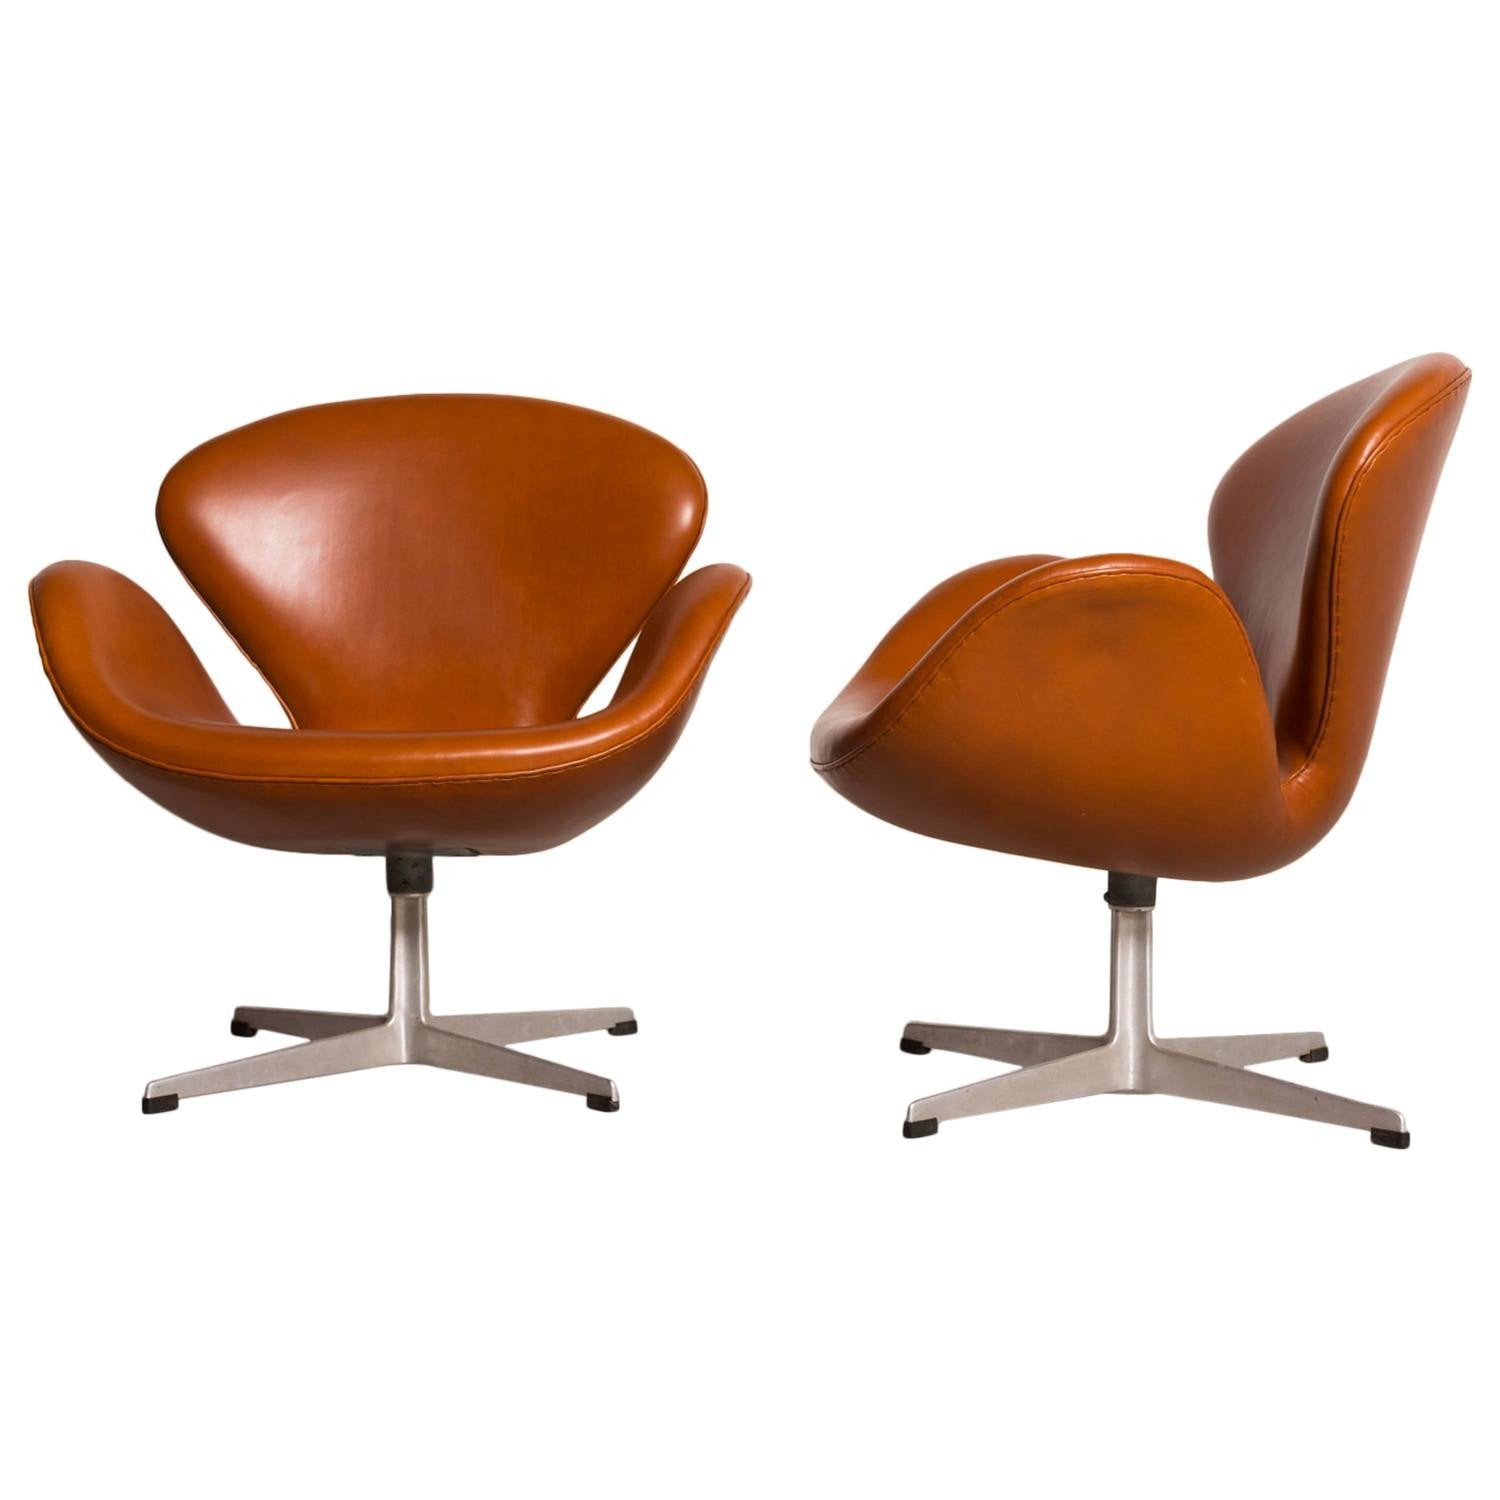 Early Arne Jacobsen Swan Chairs for Fritz Hansen - The Exchange Int